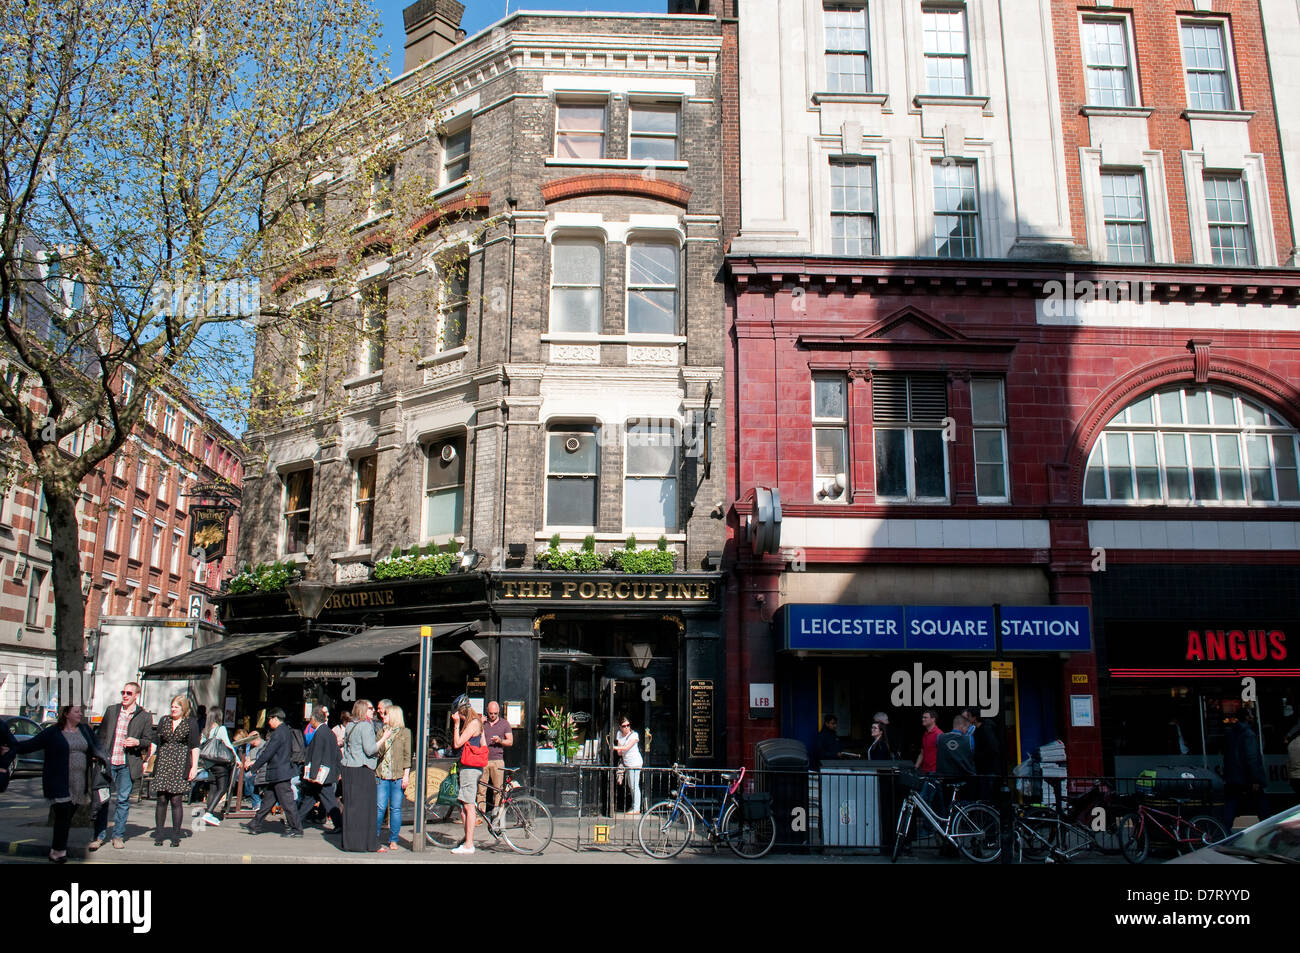 The Porcupine Pub next Leicester Square tube station, Charing Cross Road, London, UK - Stock Image